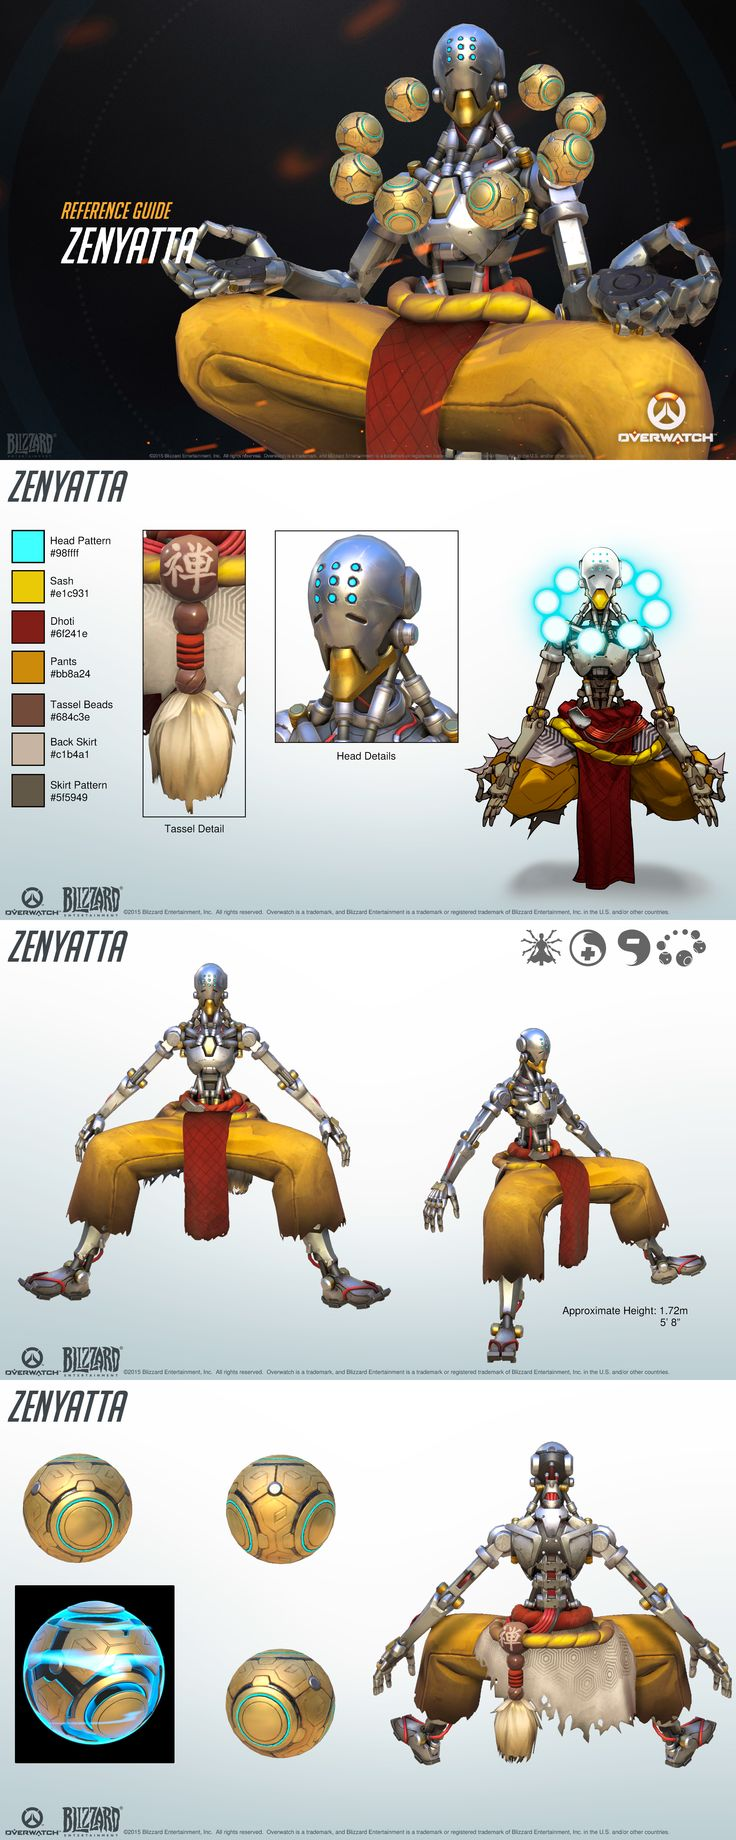 Book Character Design Tips : Best images about overwatch on pinterest artworks